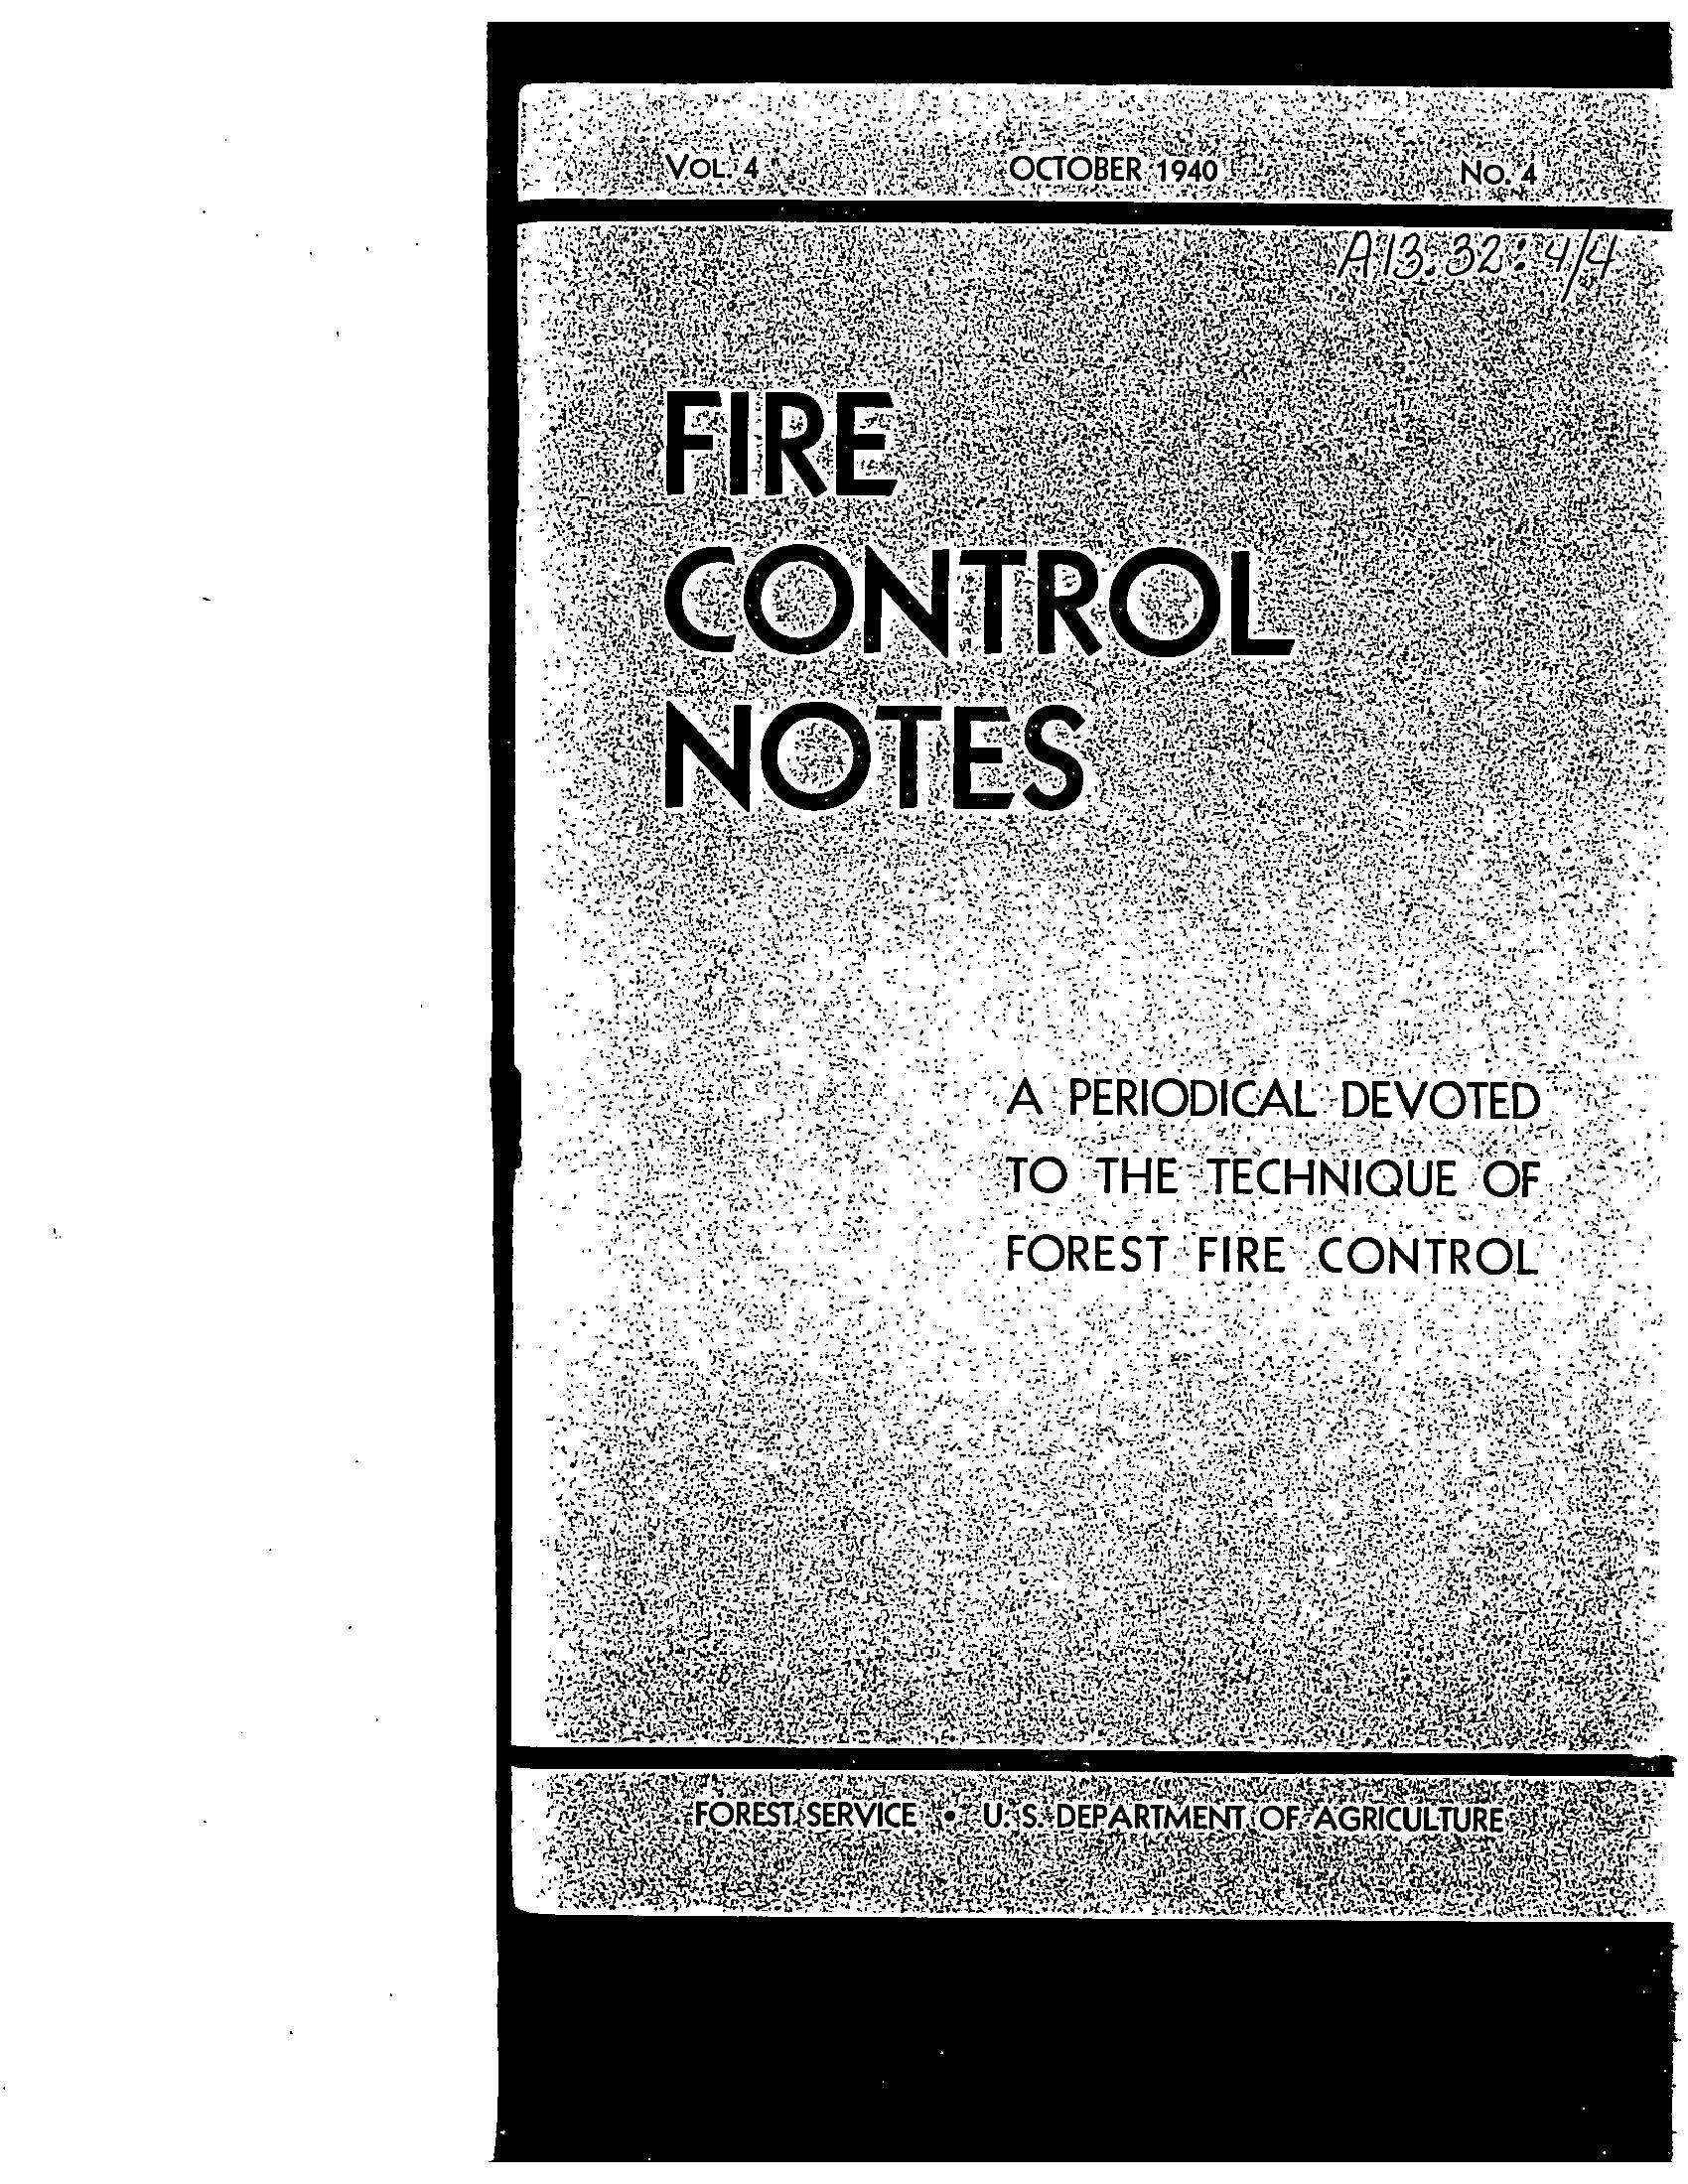 Cover of Fire Management Today Volume 04, Issue 04